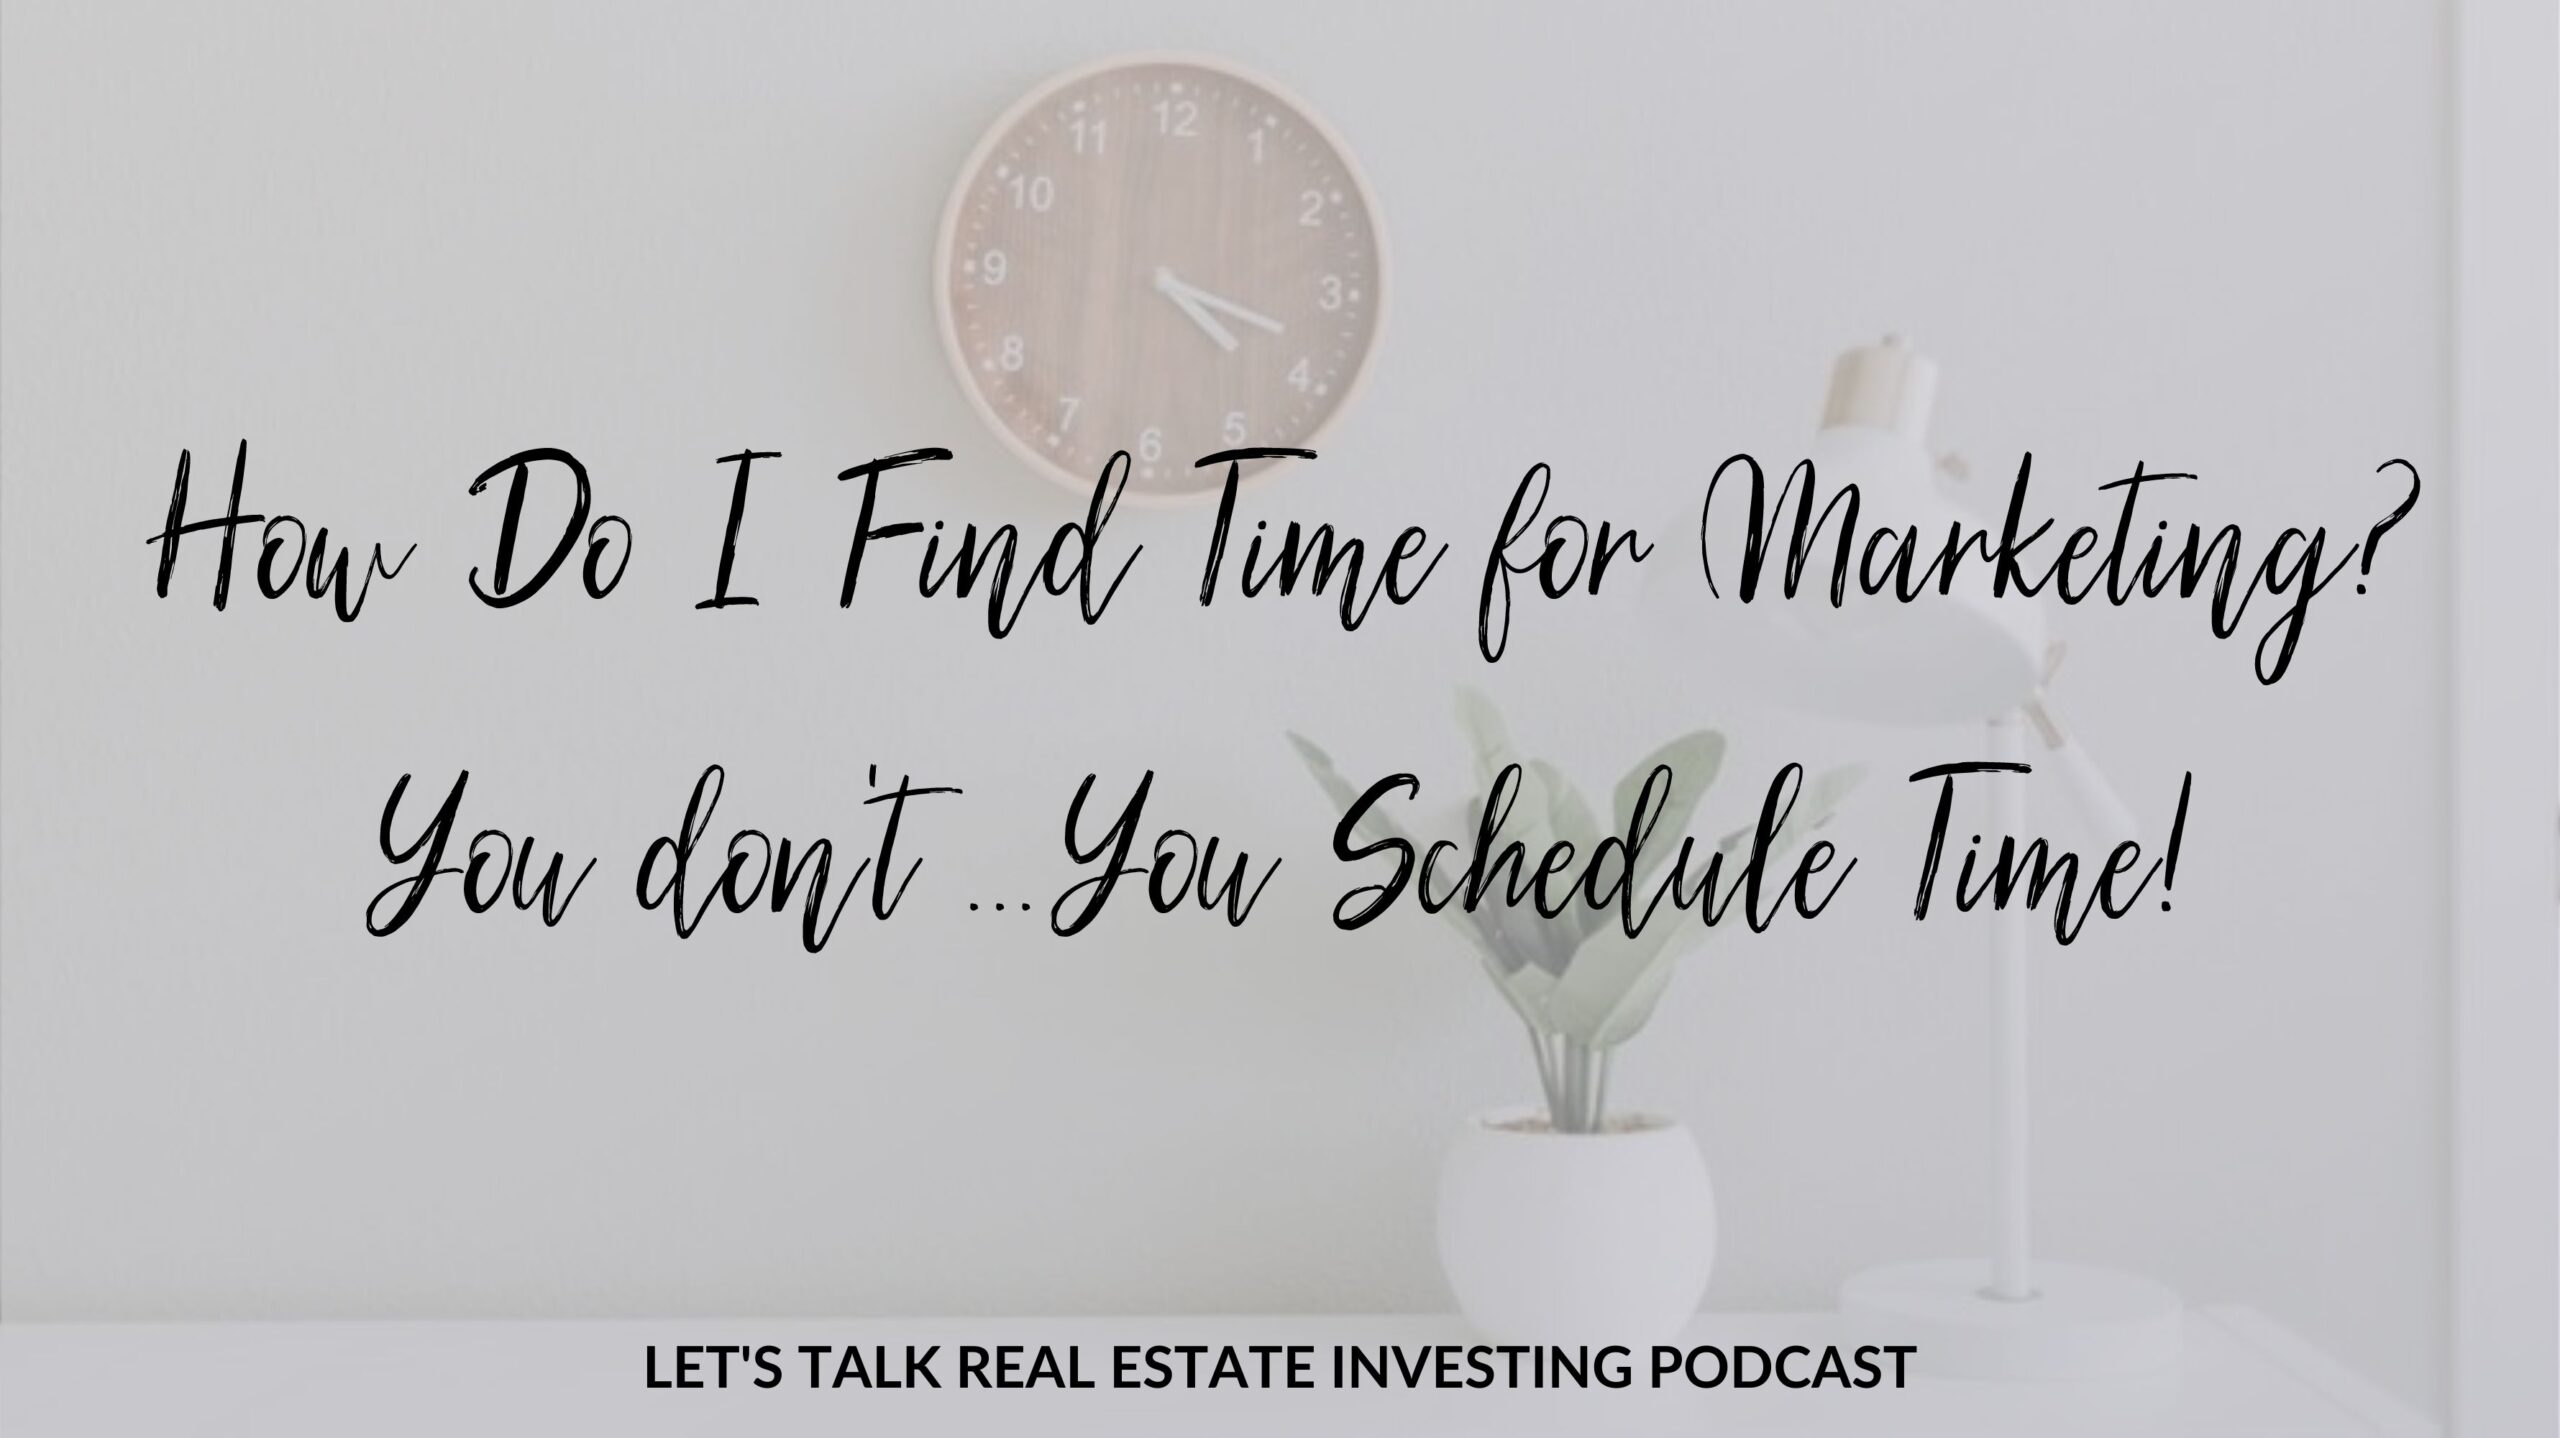 How Do I Find Time for Marketing? You don't ...You Schedule Time!